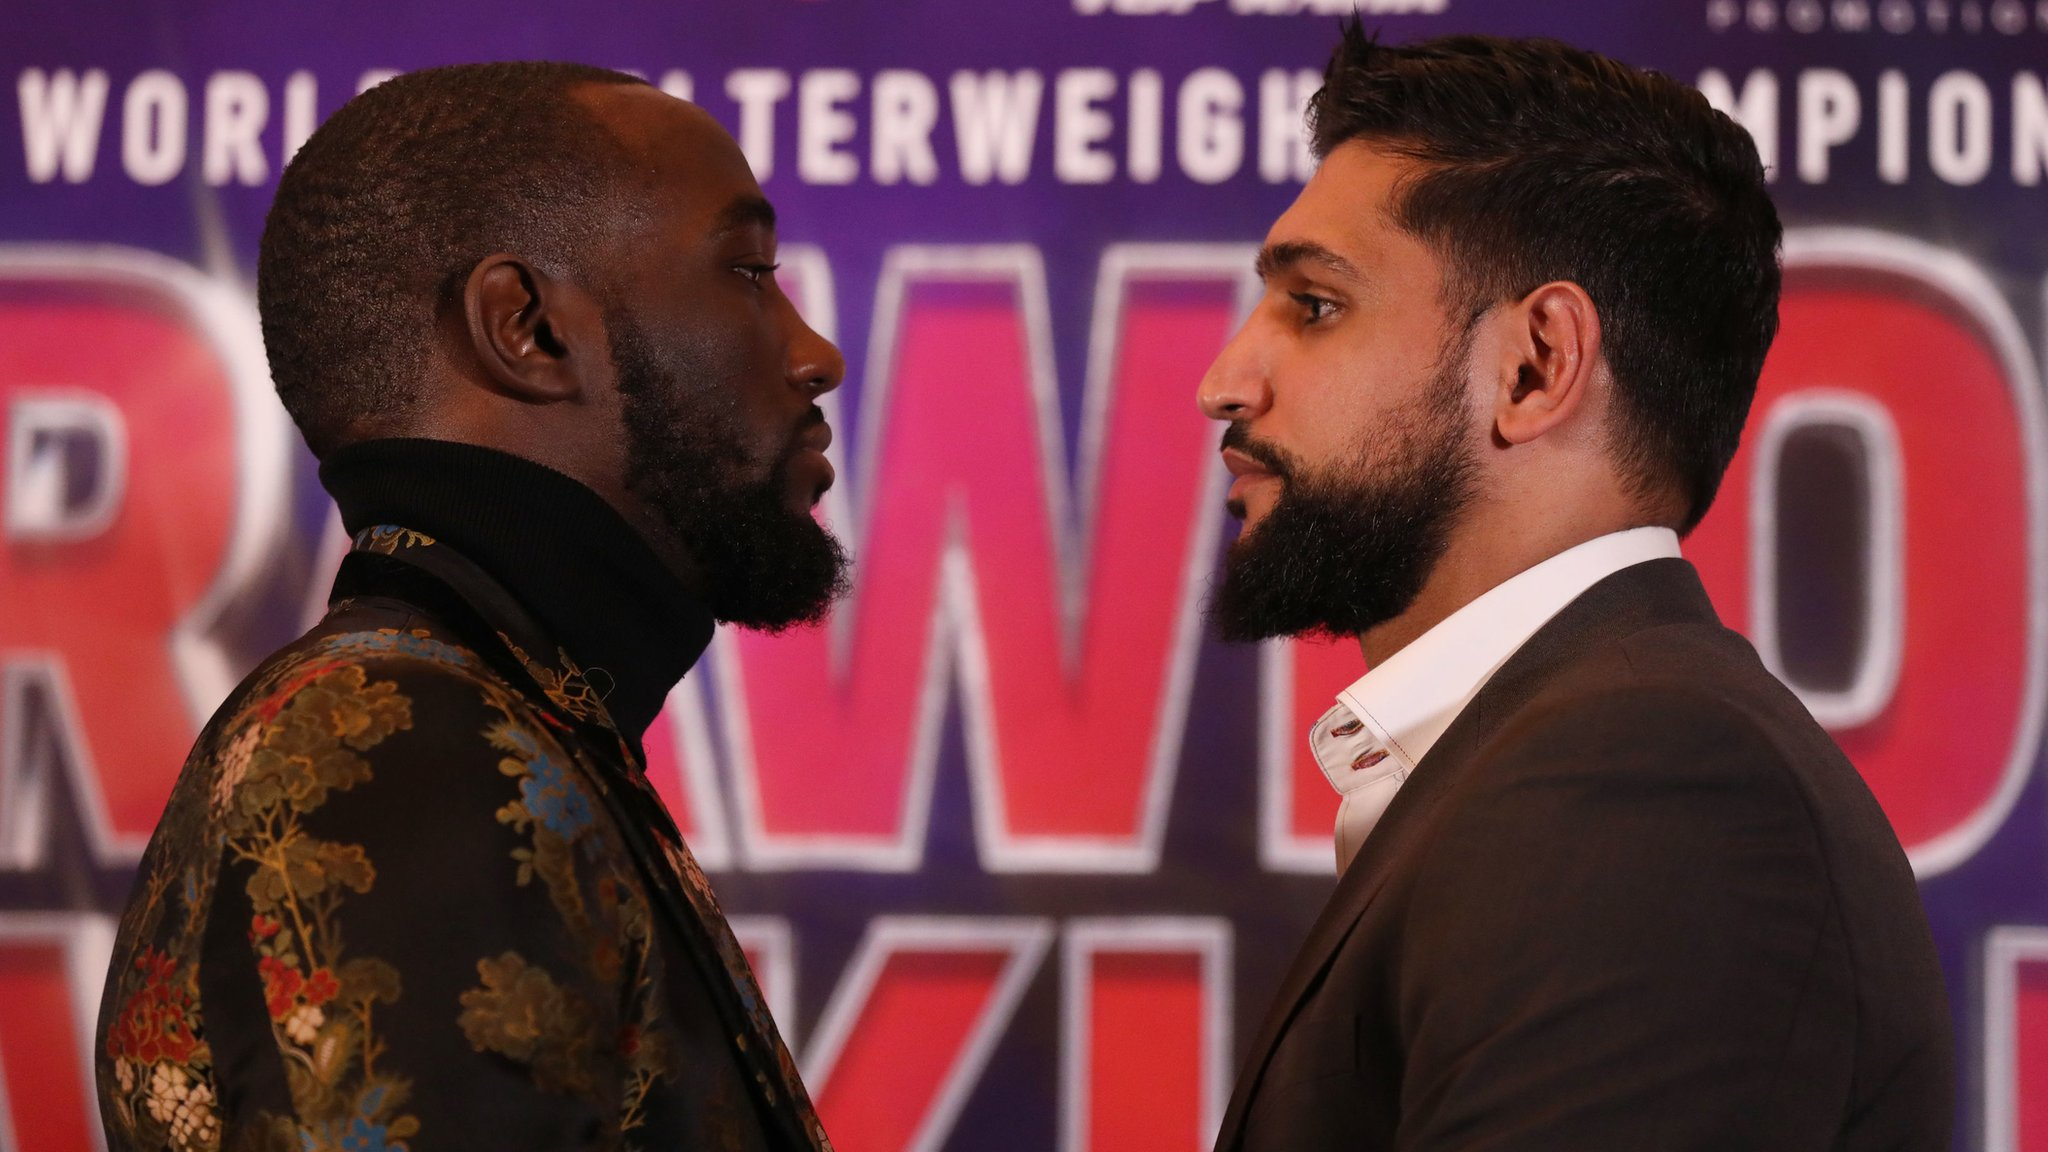 I couldn't say no to Crawford, but I still want Brook fight - Khan